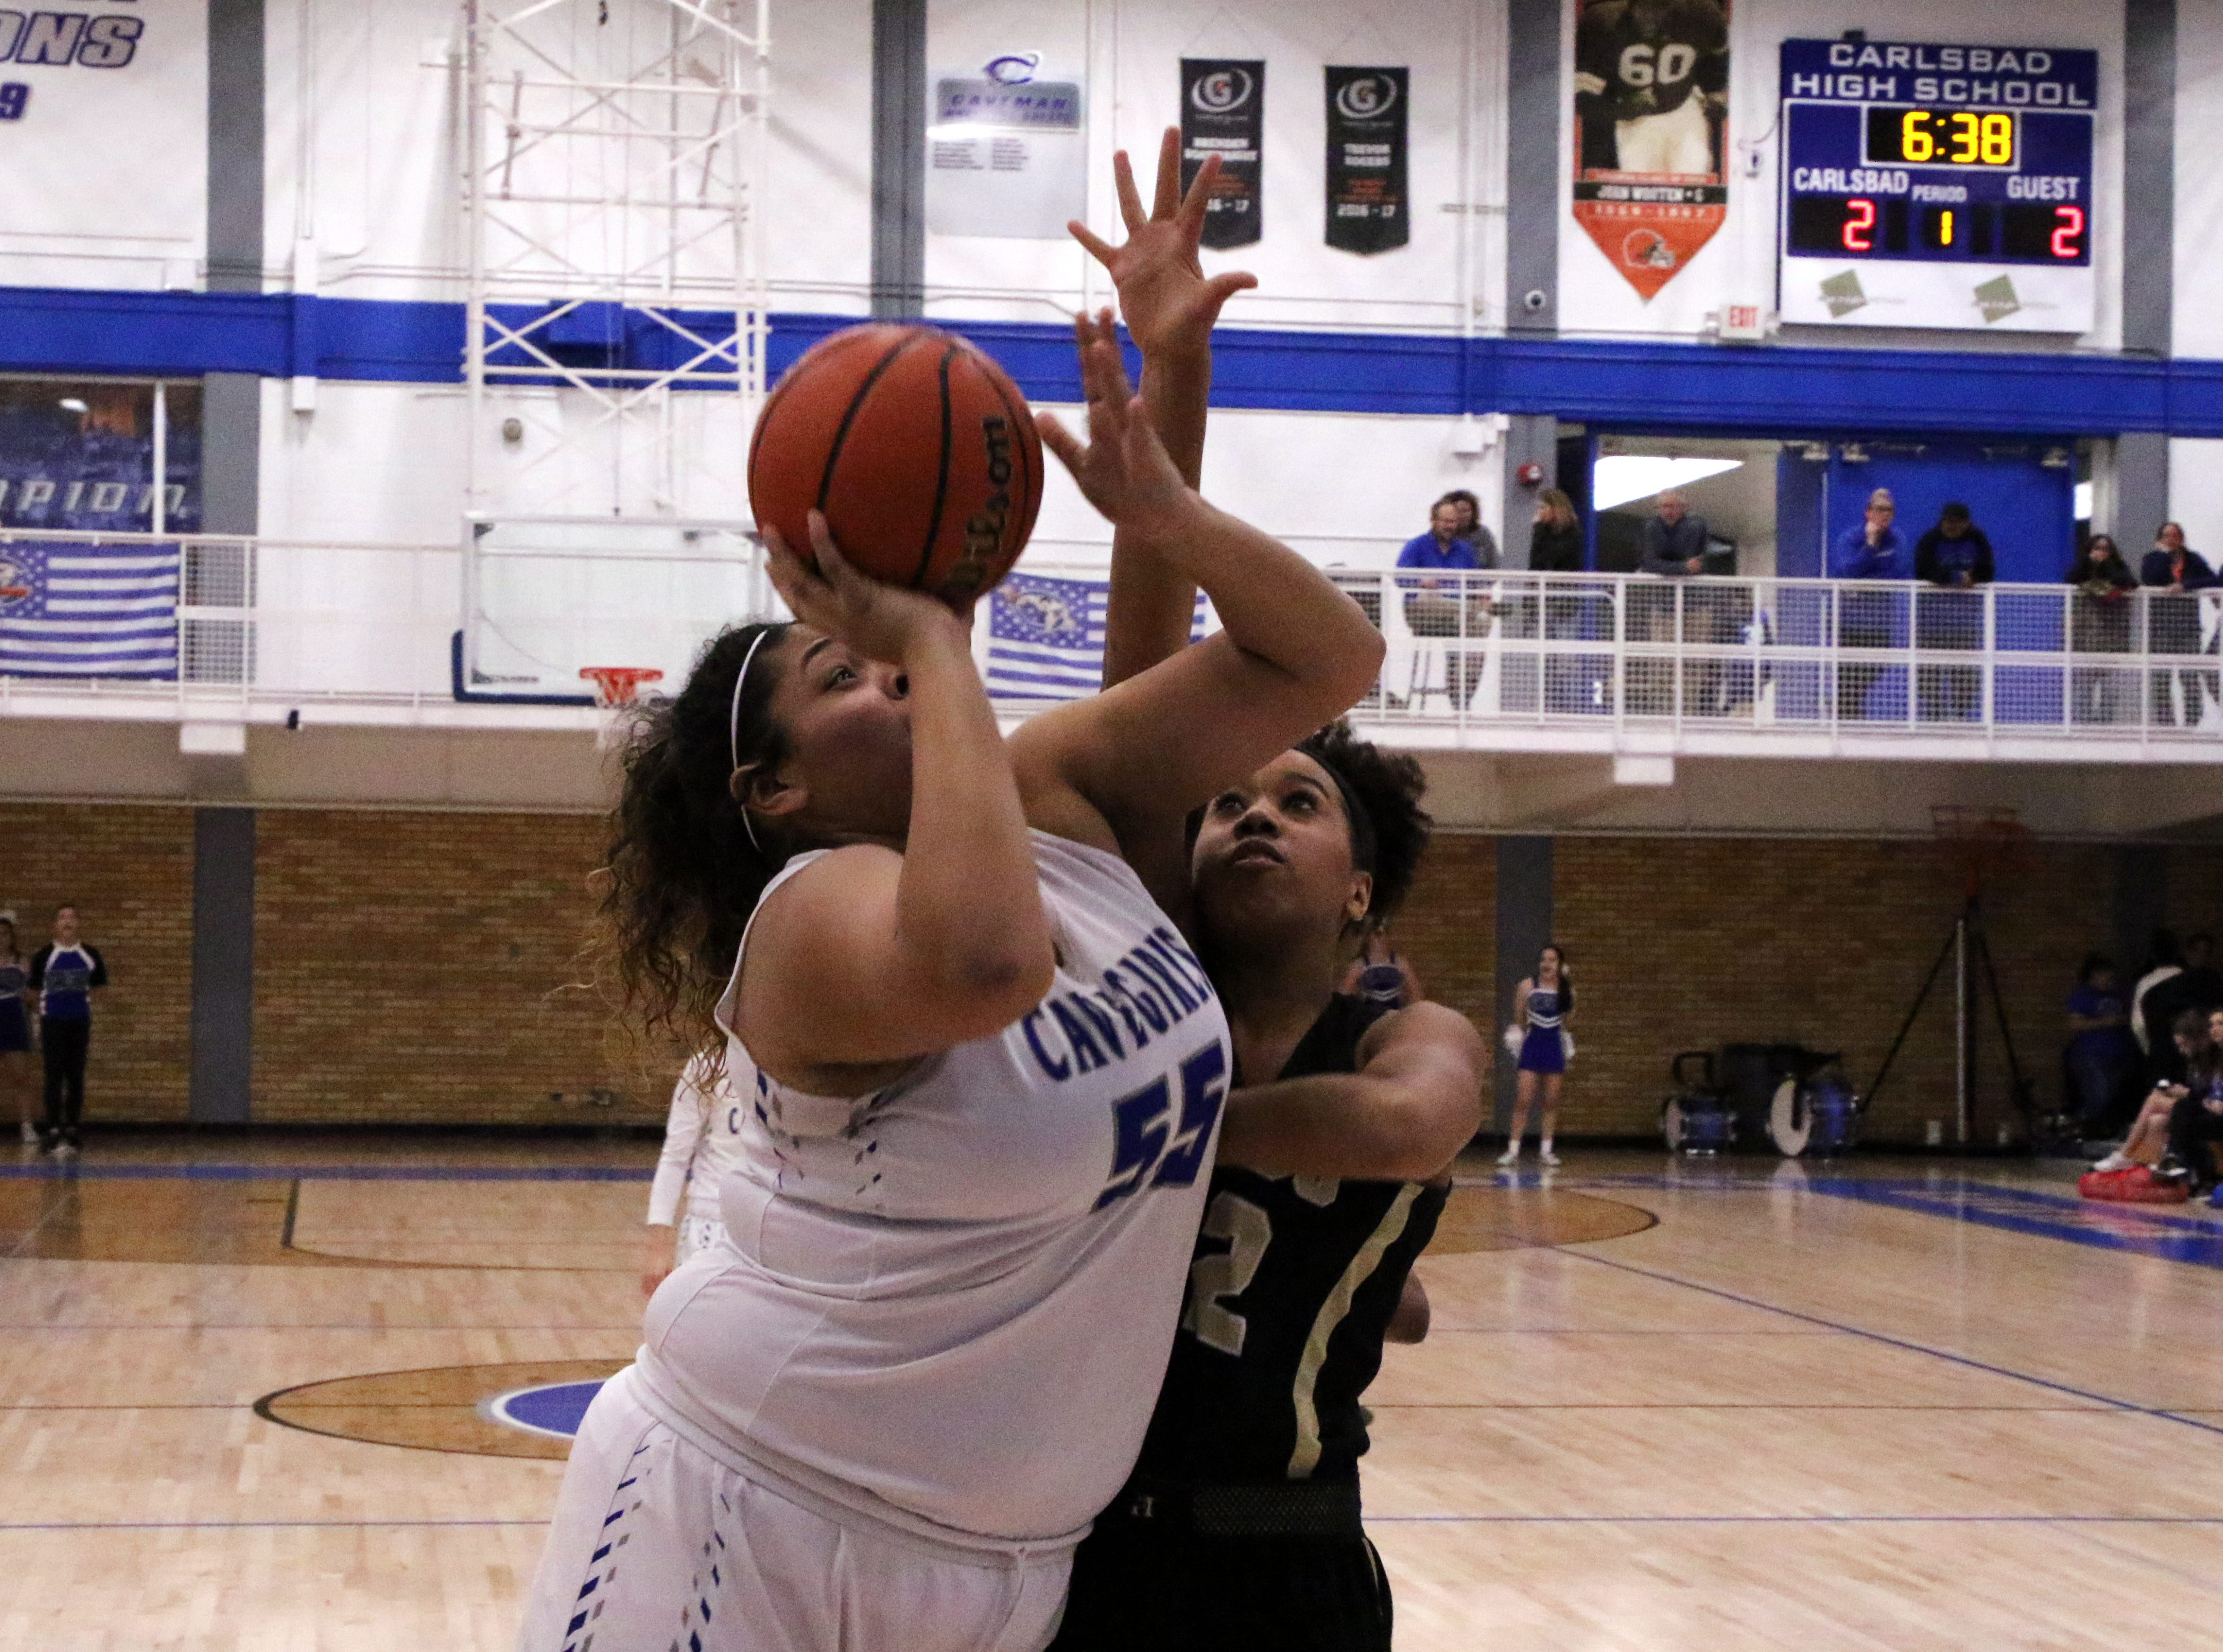 Carlsbad's Kaliyah Montoya goes for a contested shot against Hobbs' Elise Turrubiates during the first quarter of Friday's game. Montoya led all scorers with 17 points and Hobbs won, 46-42.